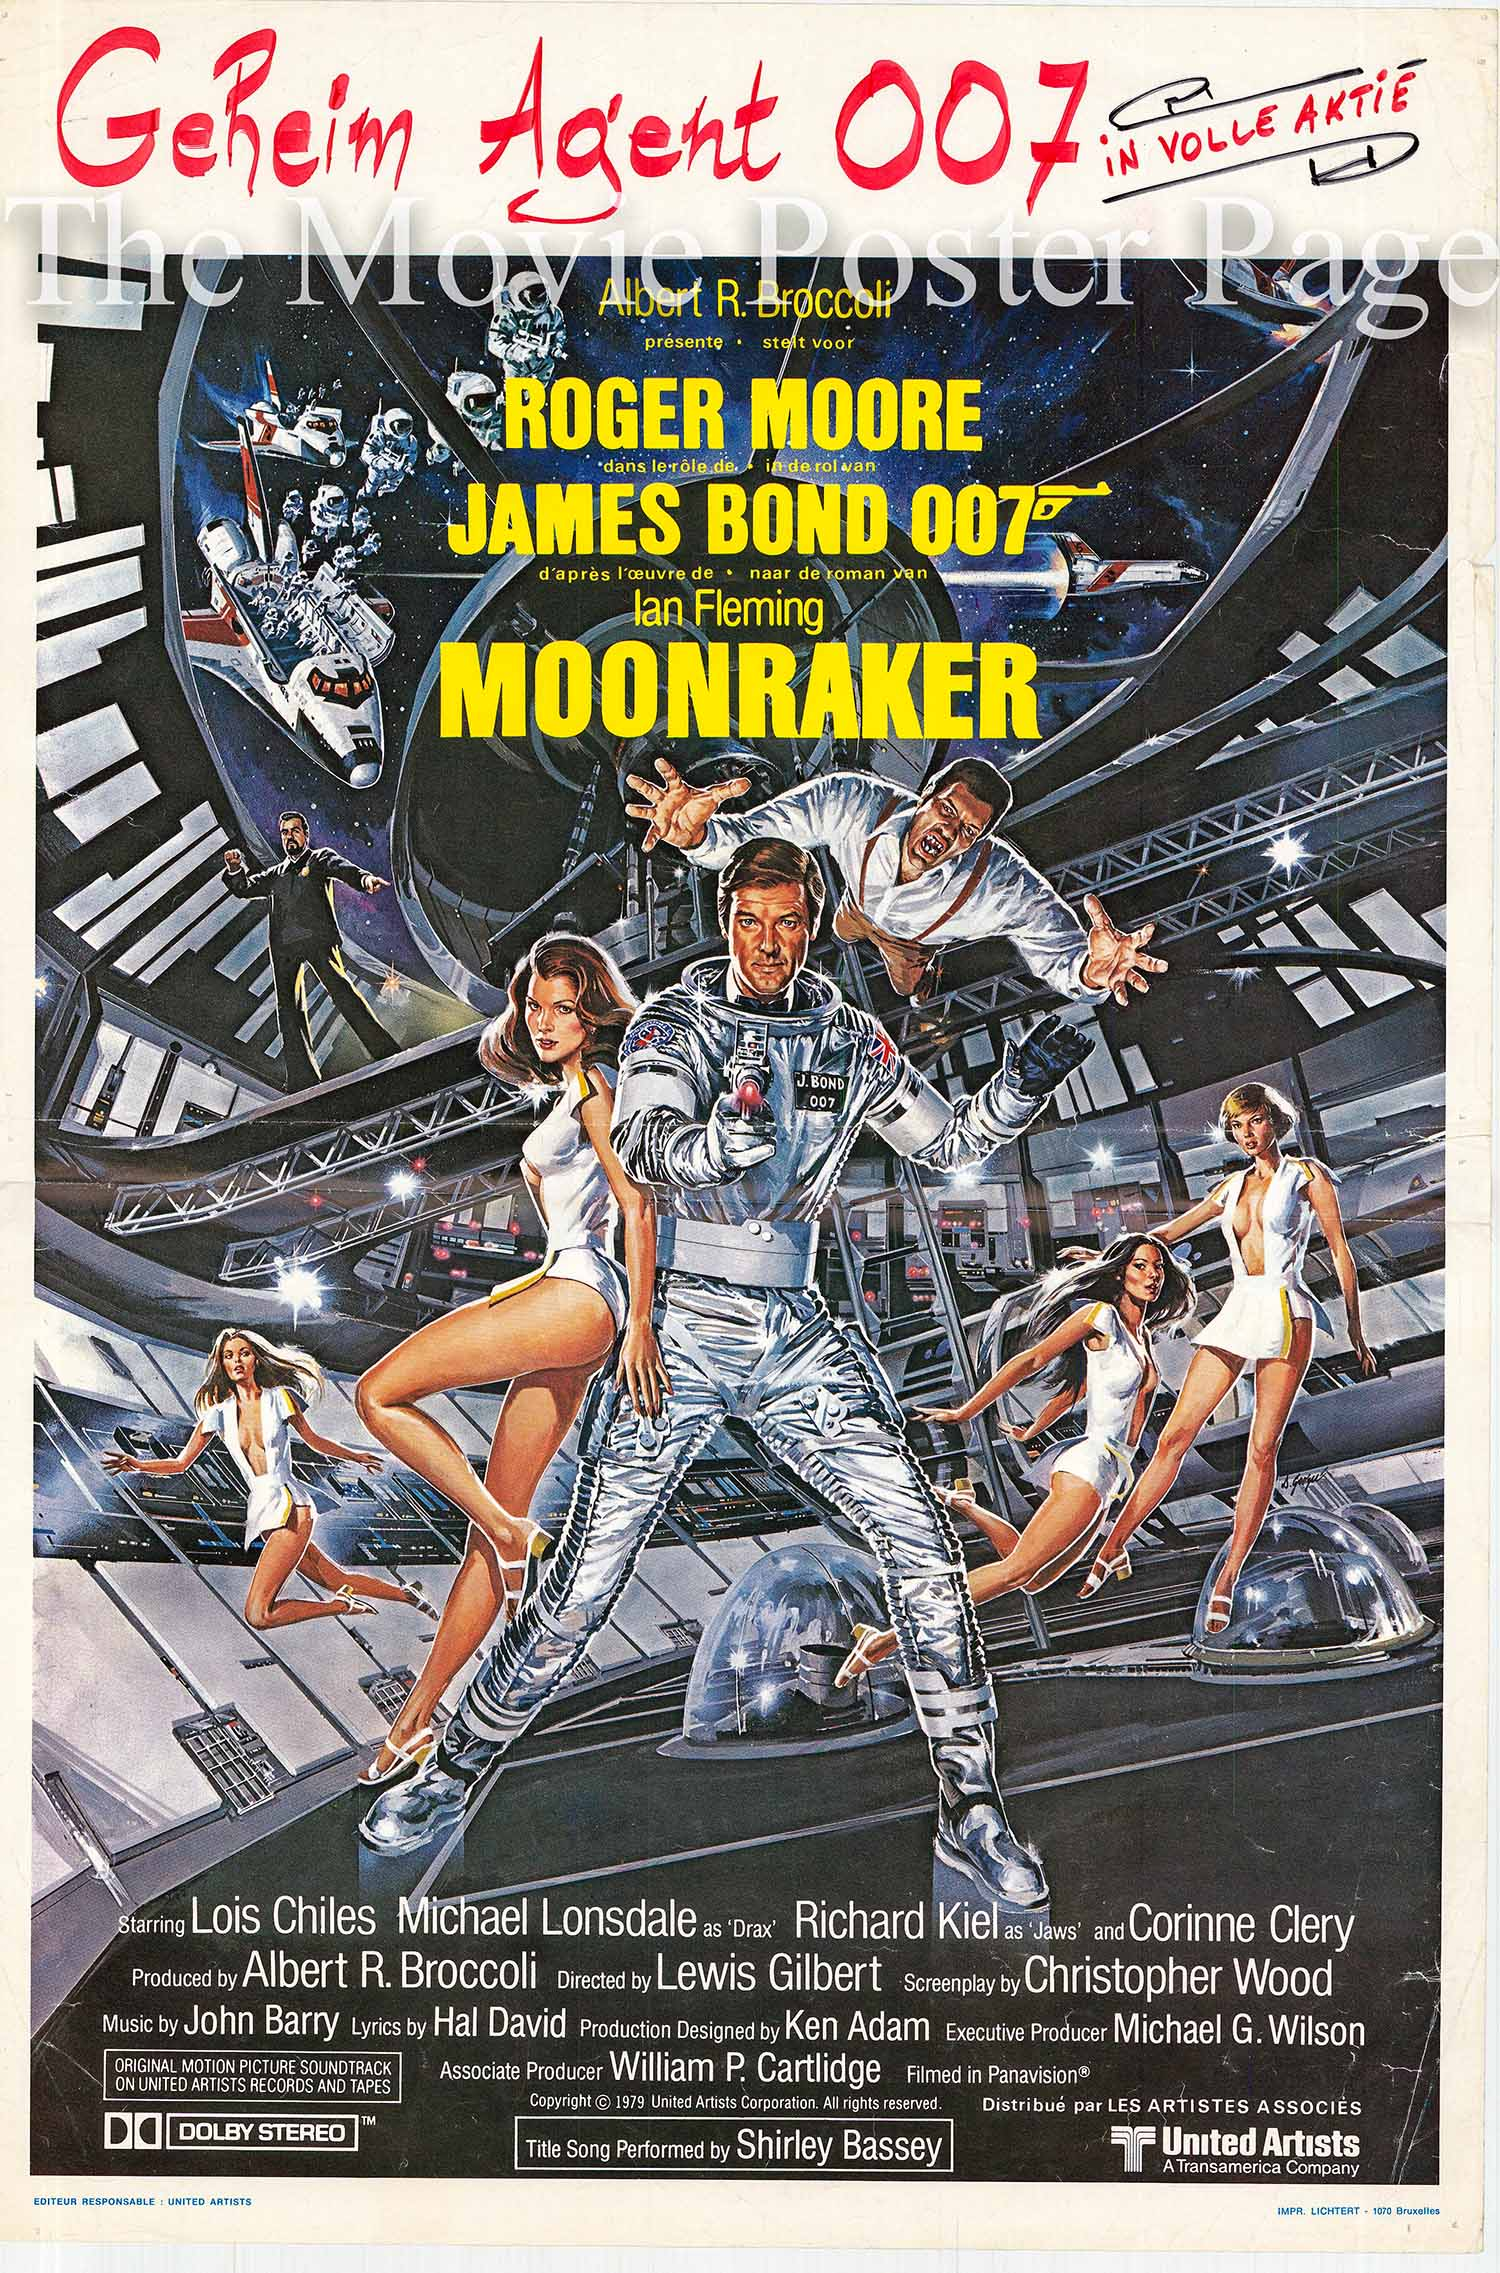 Pictured is a Belgian promotional poster for the 1979 Lewis Gilbert film Moonraker starring Roger Moore as James Bond.